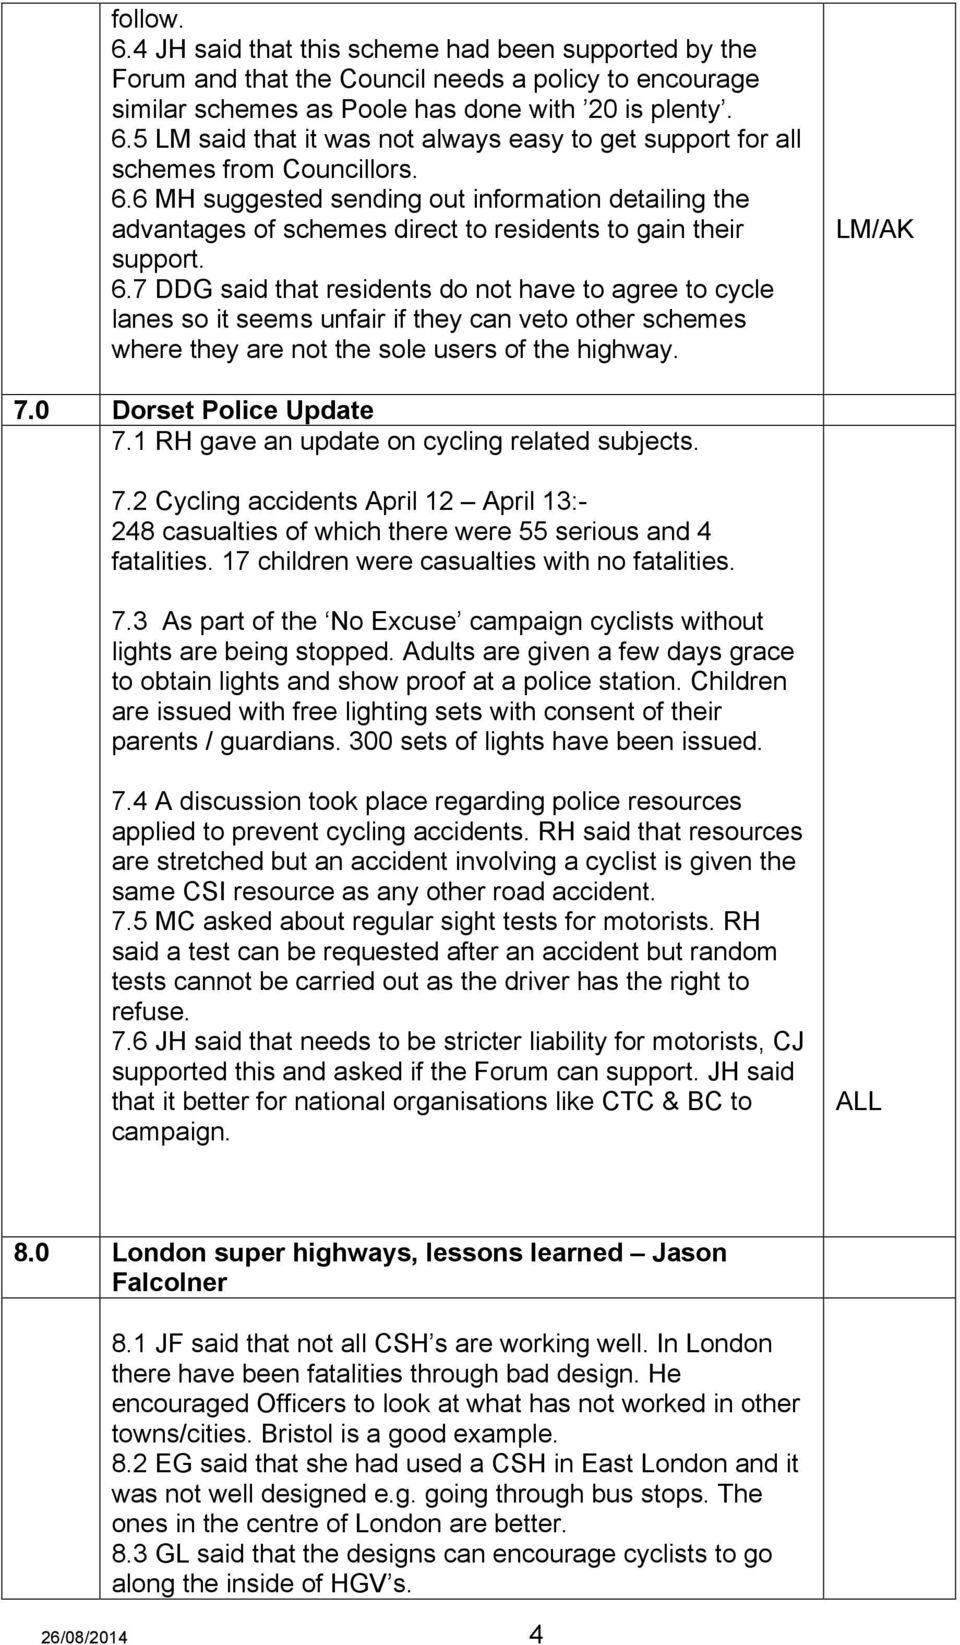 7 DDG said that residents do not have to agree to cycle lanes so it seems unfair if they can veto other schemes where they are not the sole users of the highway. 7.0 Dorset Police Update 7.